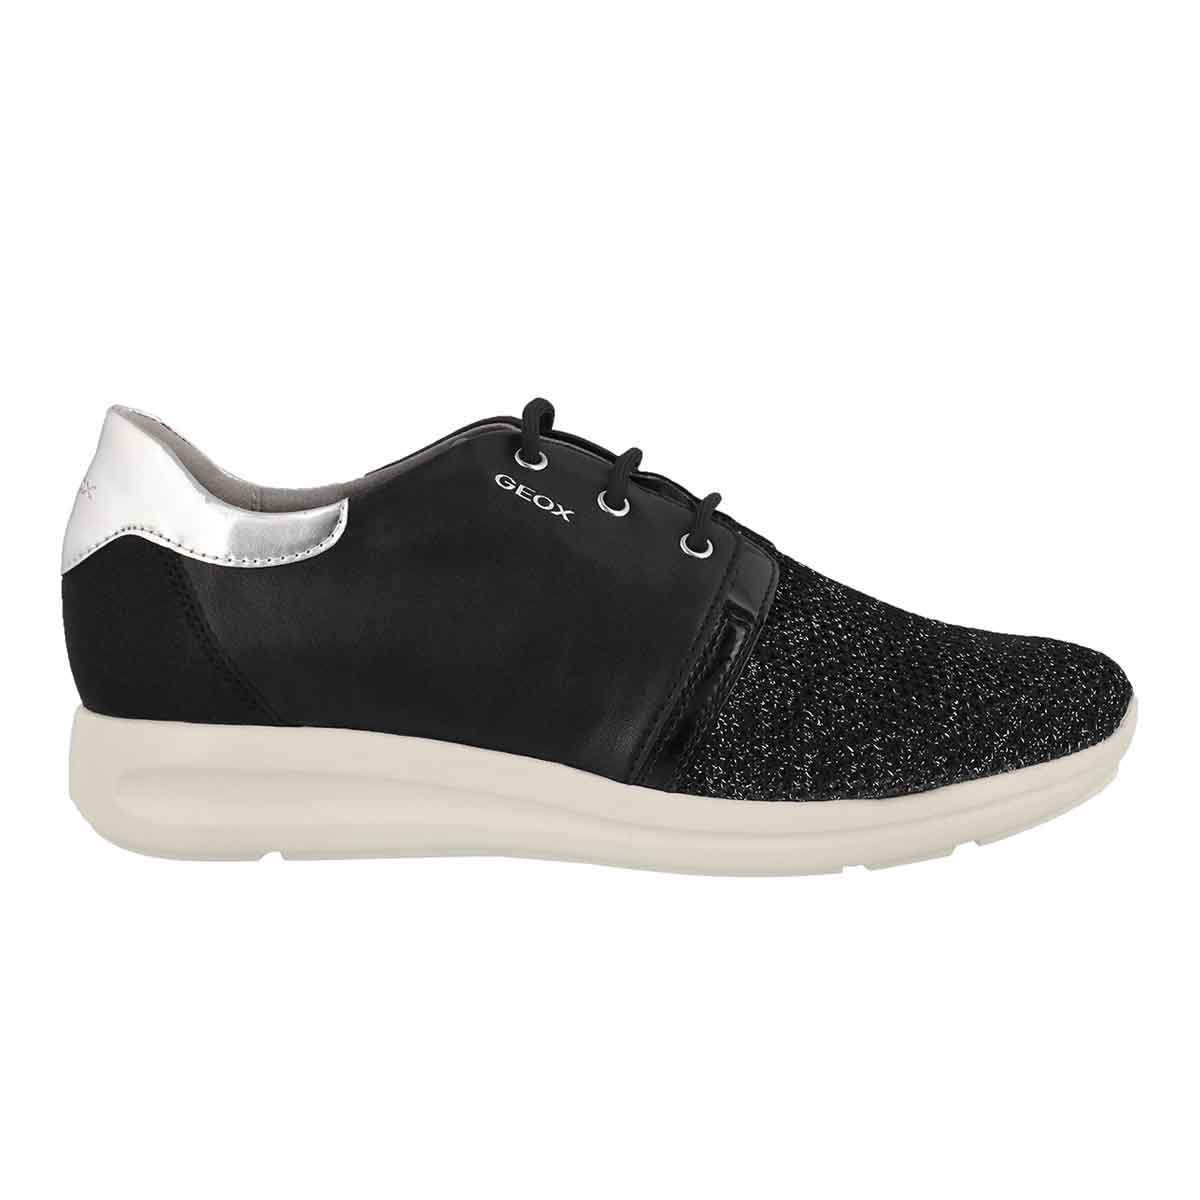 Lds Agyleah black fashion sneaker